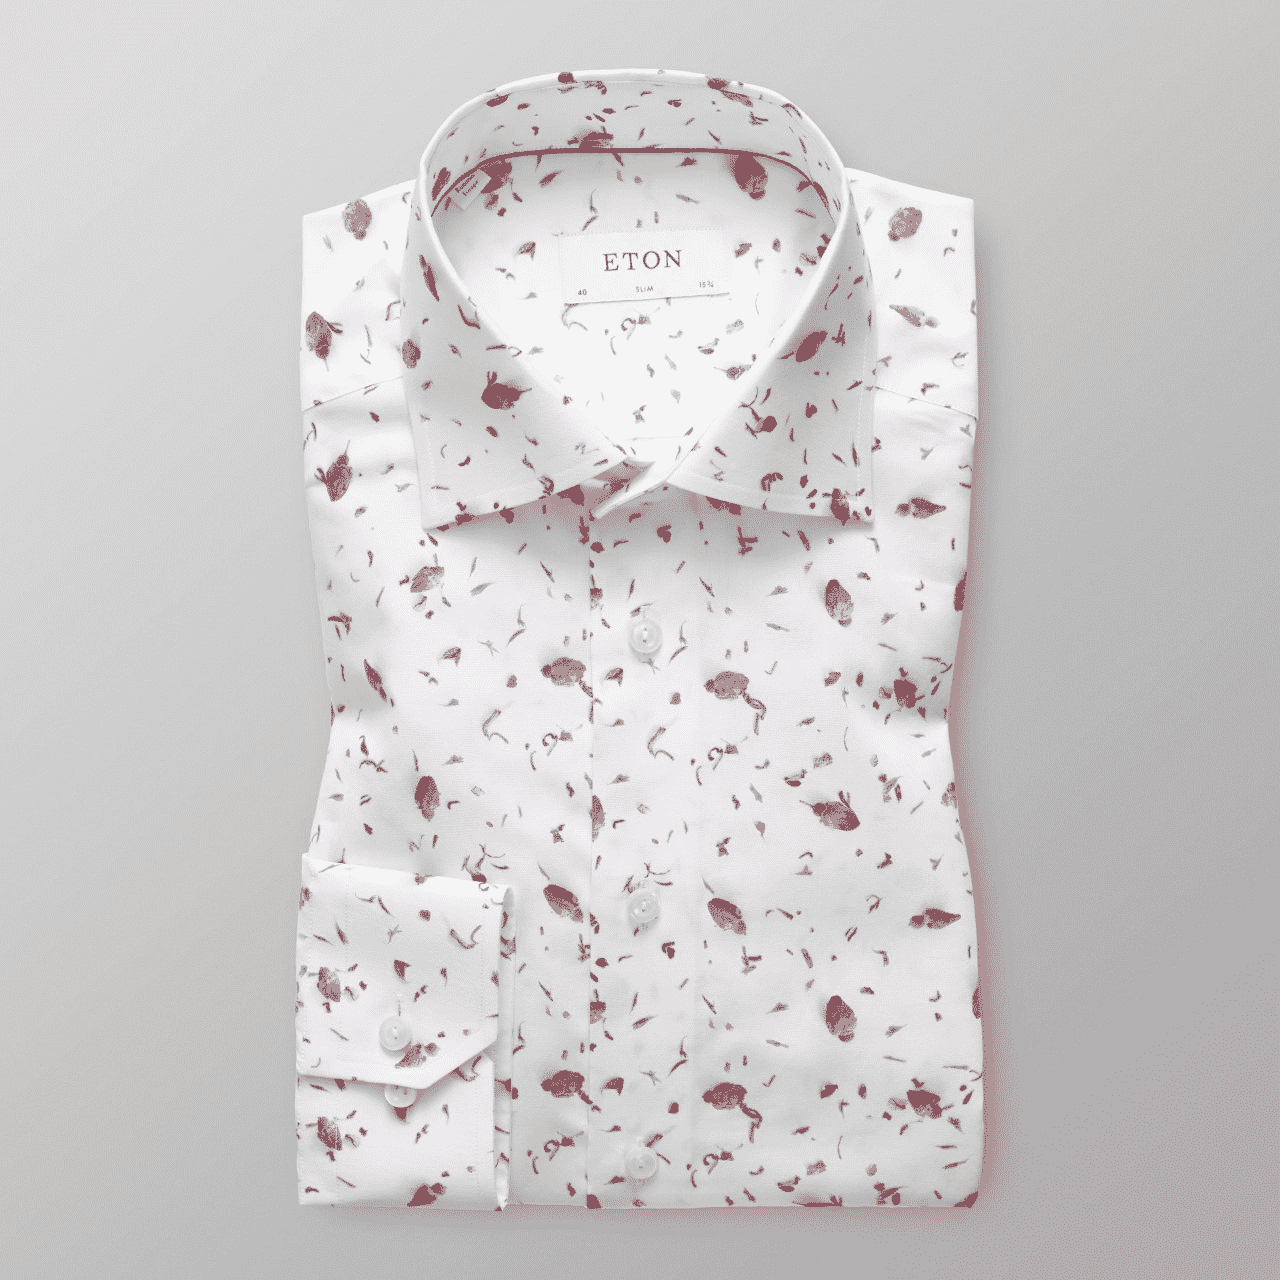 ETON LIMITED EDITION WHITE SHIRT WITH FLORAL ROSE BUD PRINT